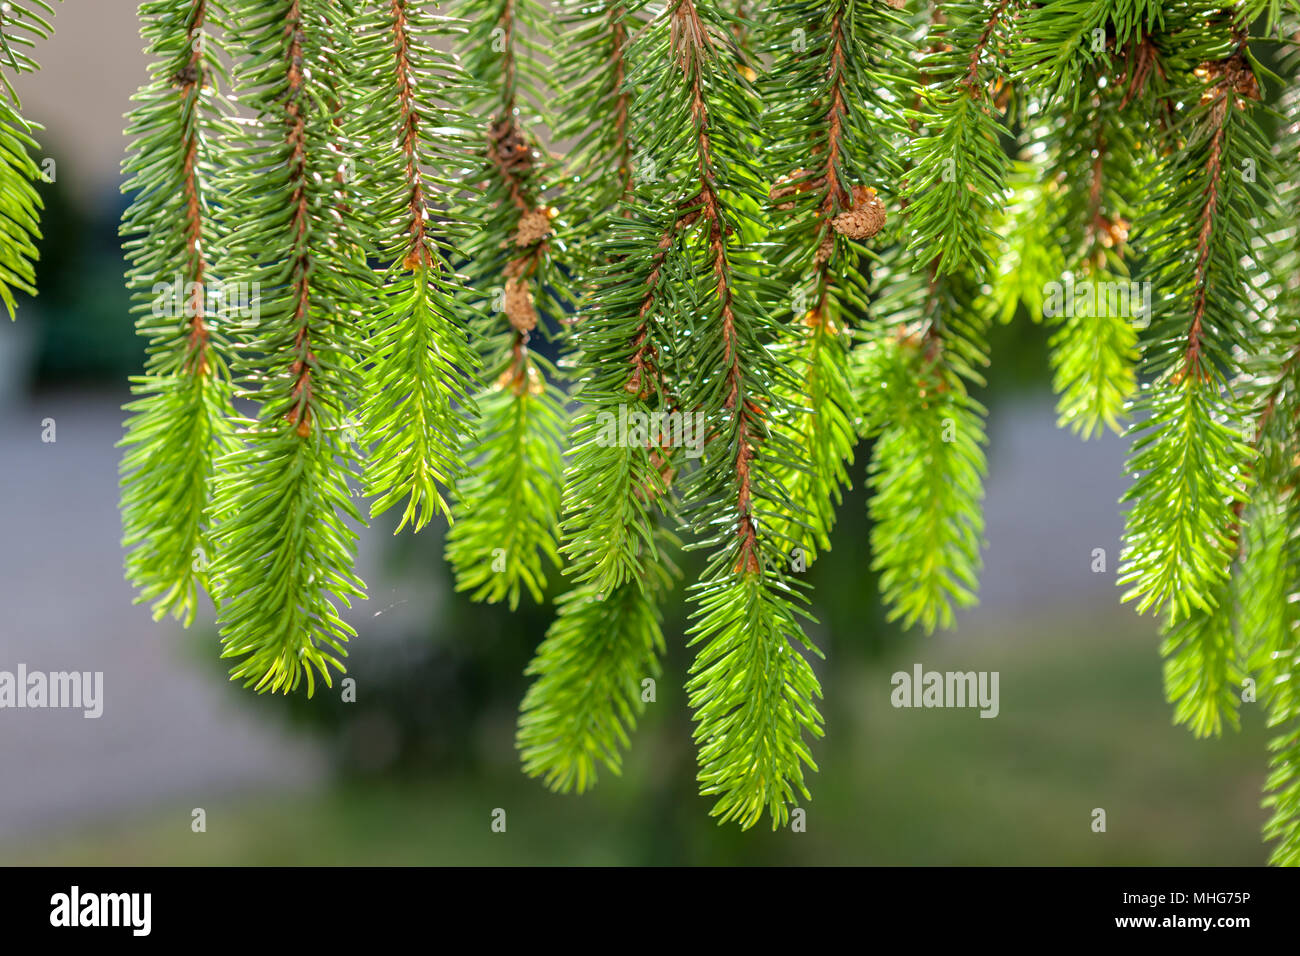 Norway Spruce, Gran (Picea abies) - Stock Image